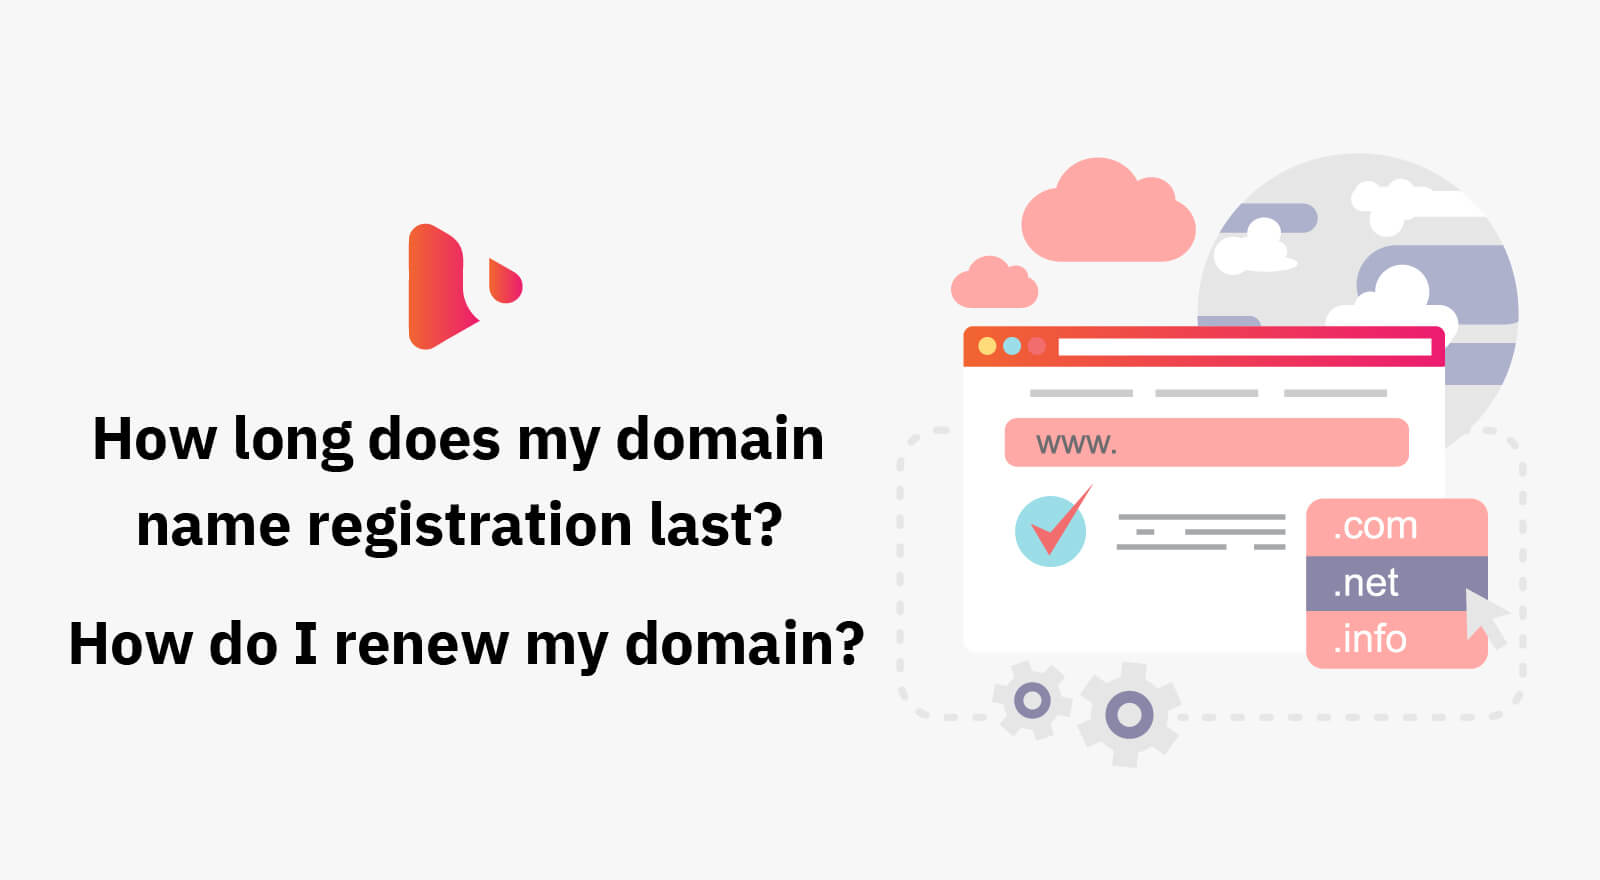 How Long Does my Domain Name Registration Last?